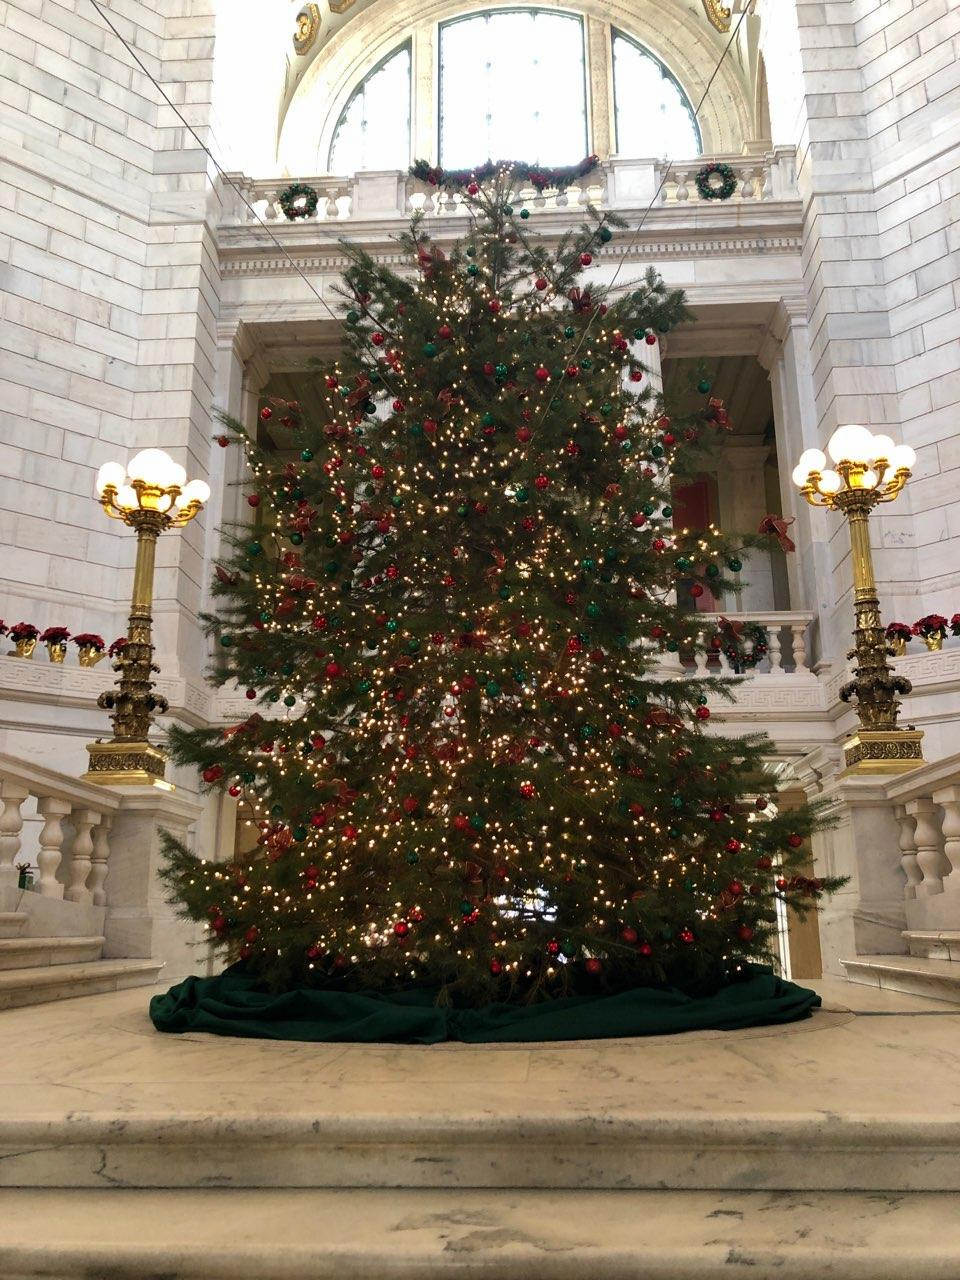 BEDROCK TREE FARM DONATES THE RI STATE HOUSE ROTUNDA CHRISTMAS TREE